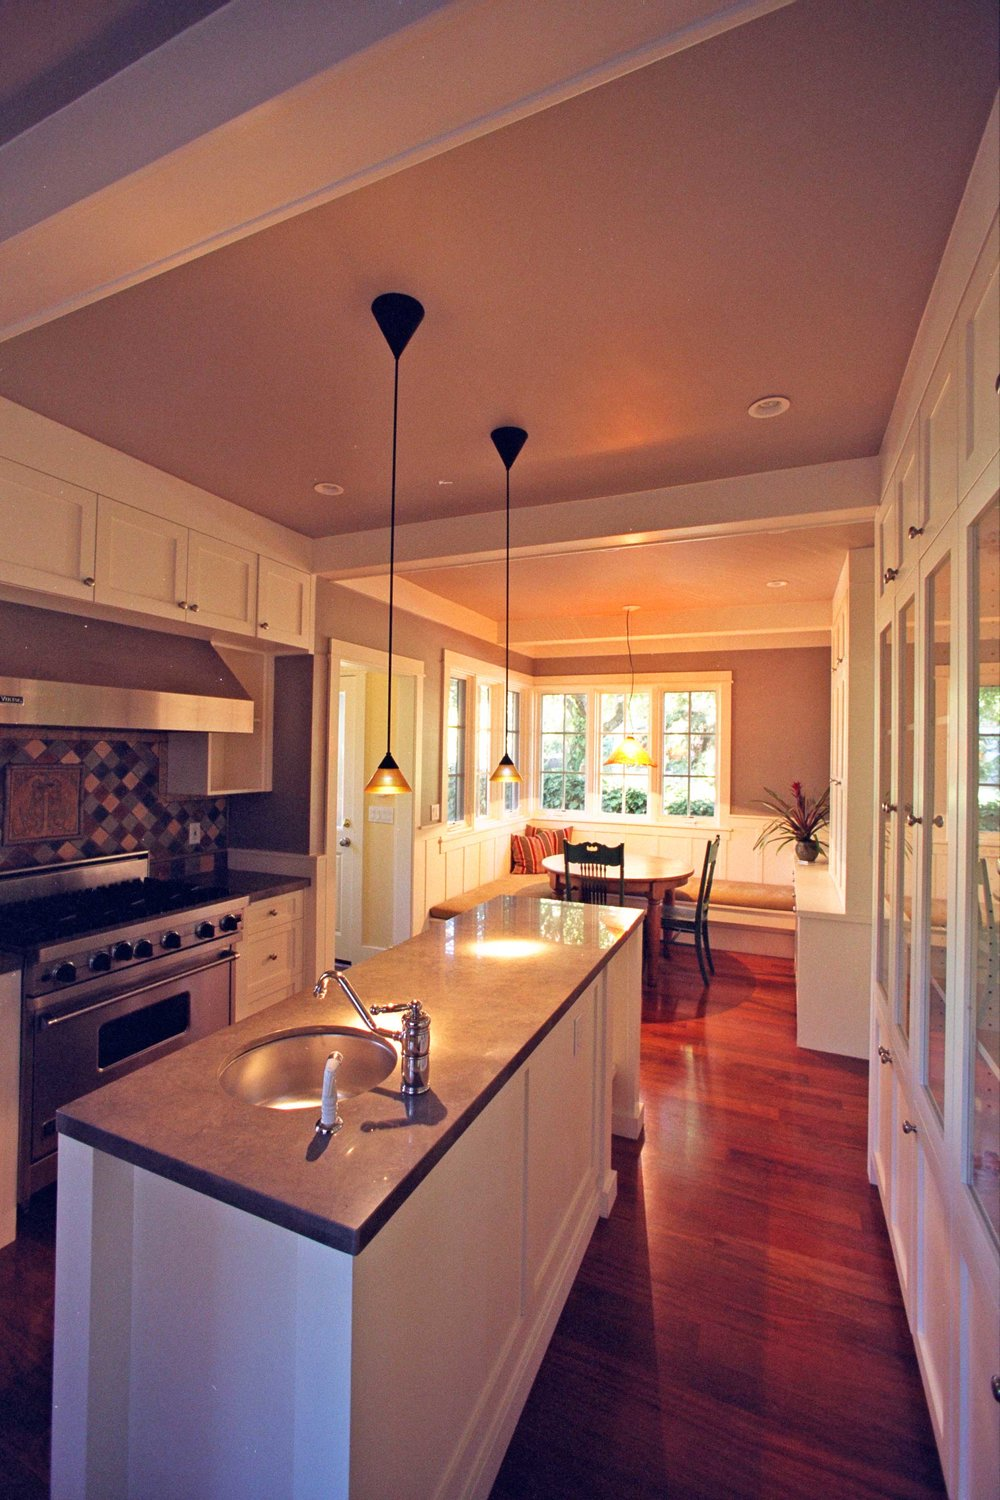 Palo-Alto-Kitchen-MS.jpg